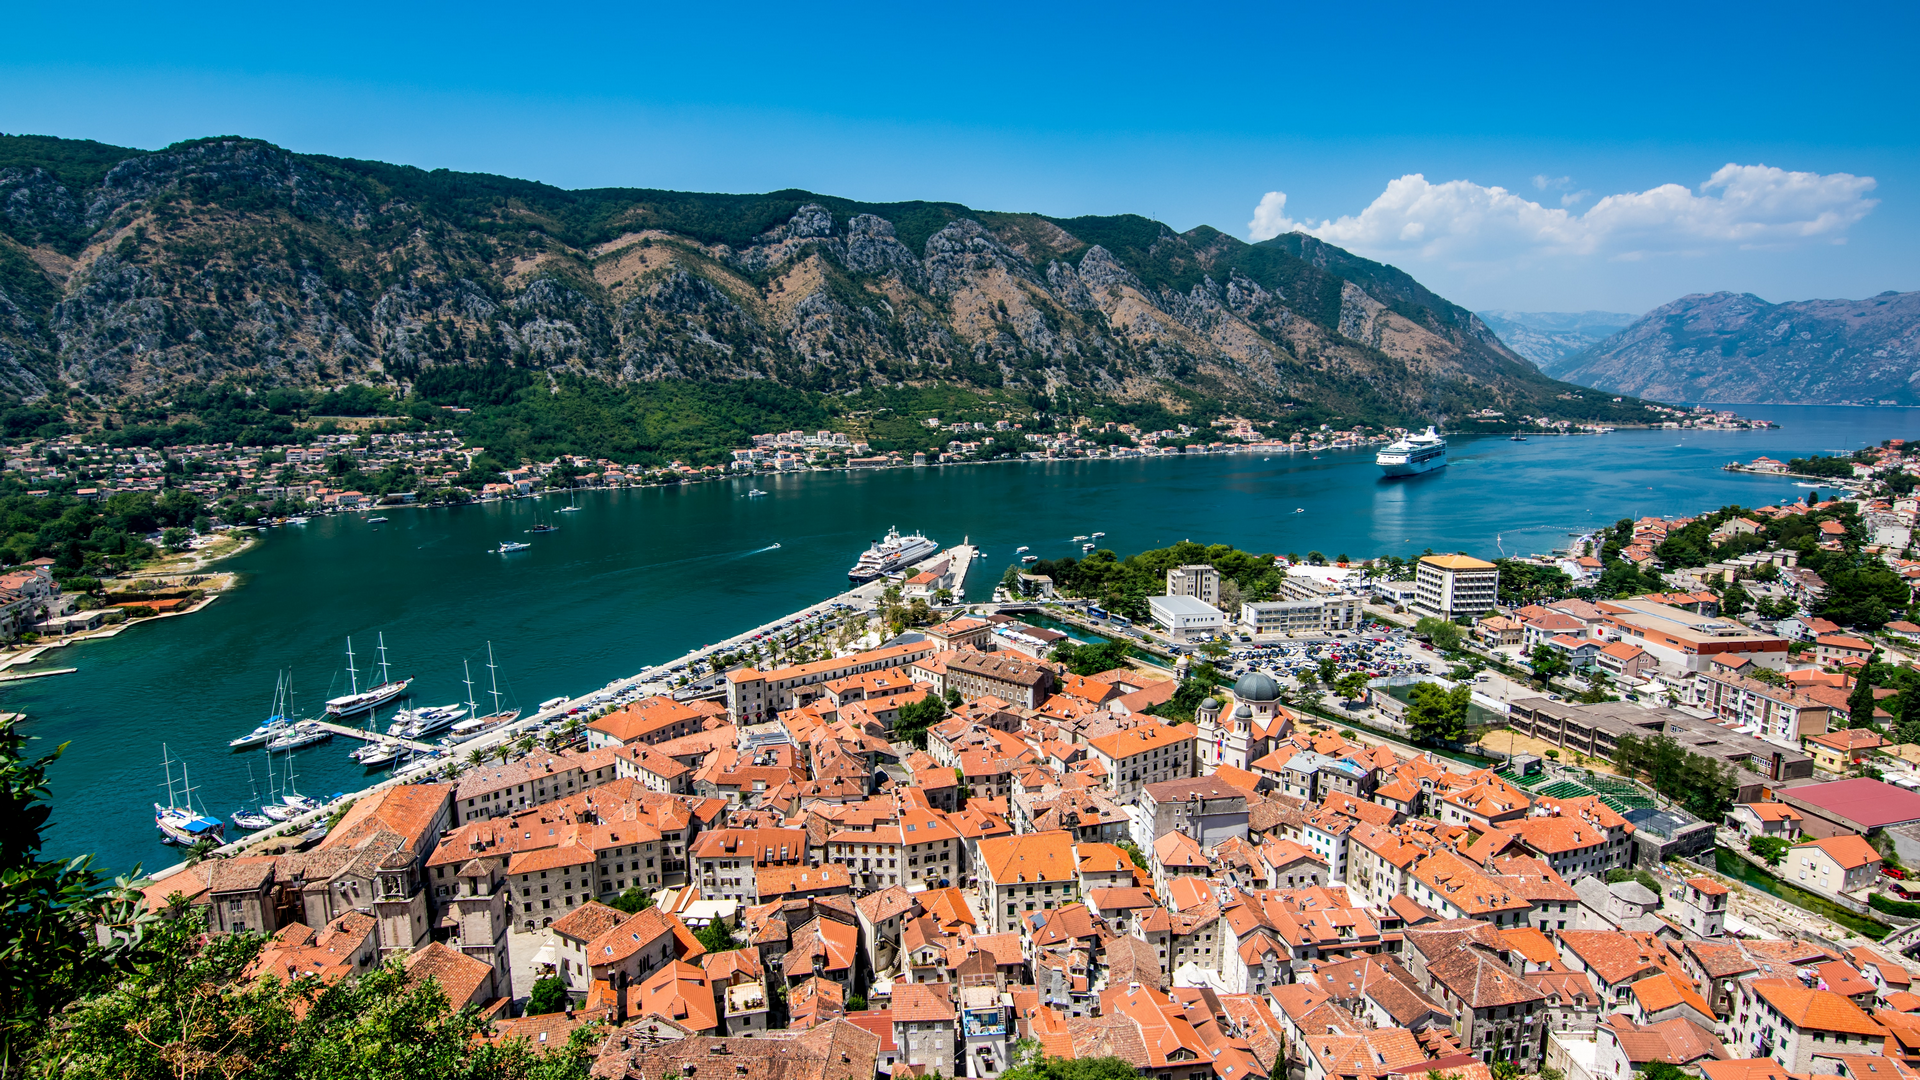 A view in Montenegro